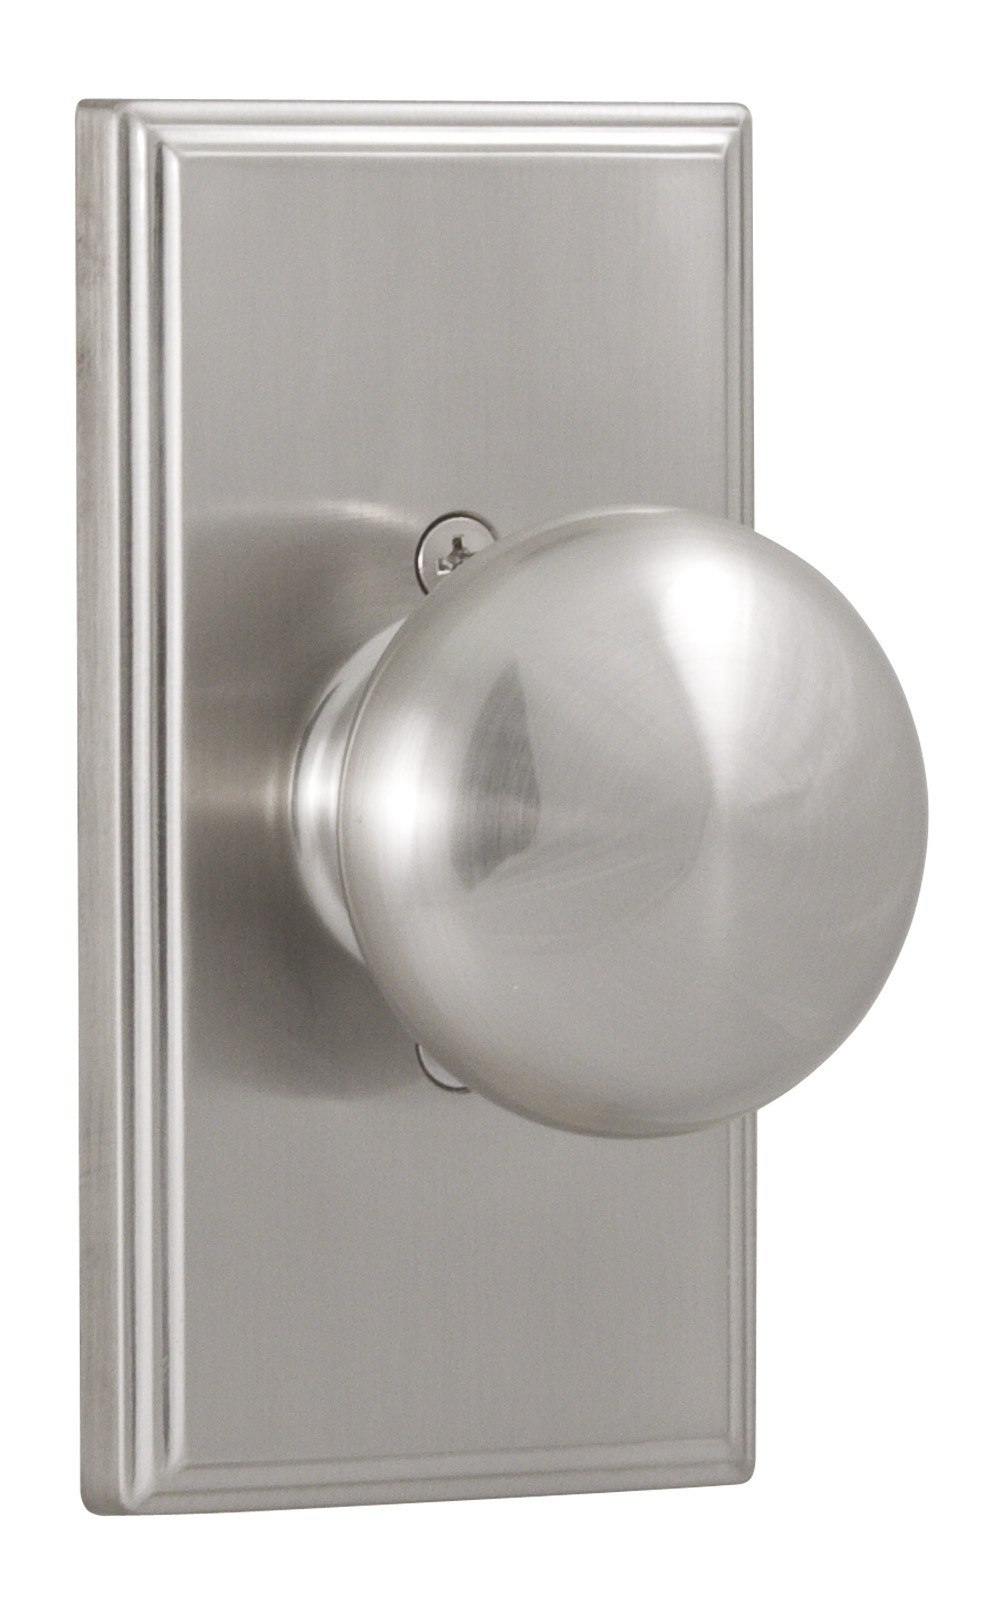 Weslock 03705I Elegance Impresa Single Dummy Door Knob with Woodward Rosette